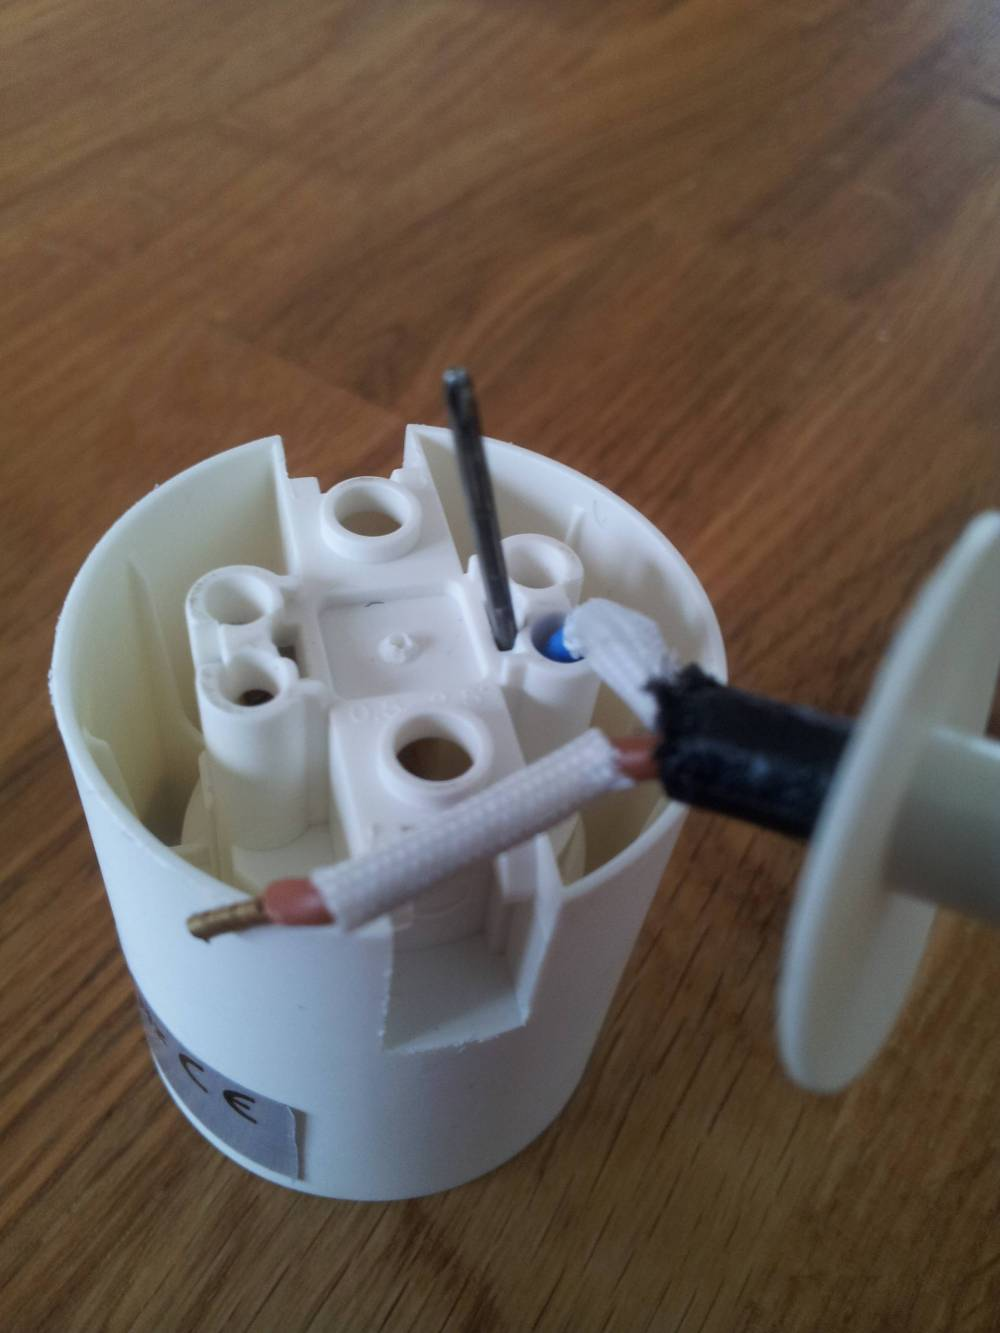 medium resolution of wiring how can i remove the wires from this lamp holder home wiring a 3 way bulb socket wiring a light socket